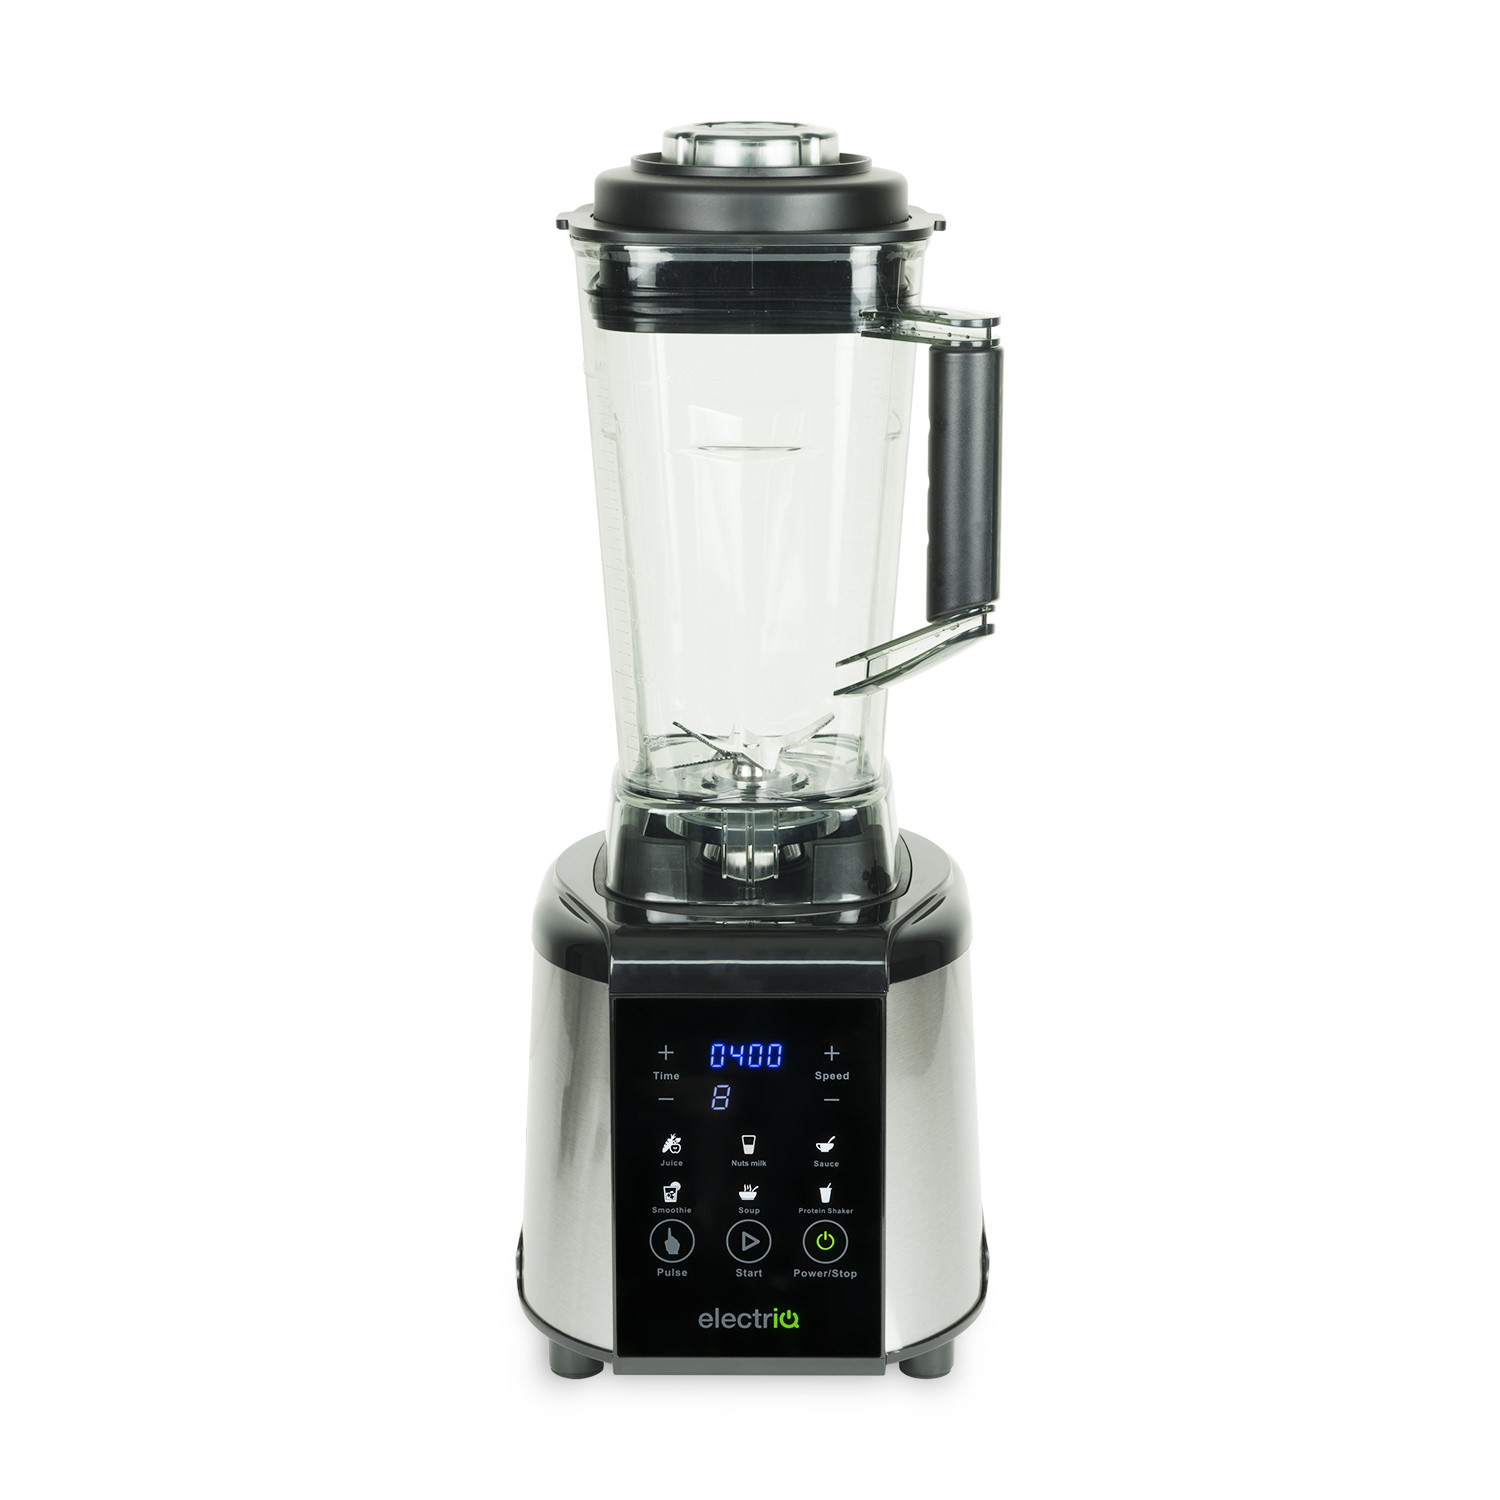 Electriq 1800 W Multi Functional Blender Smoothie And Soup